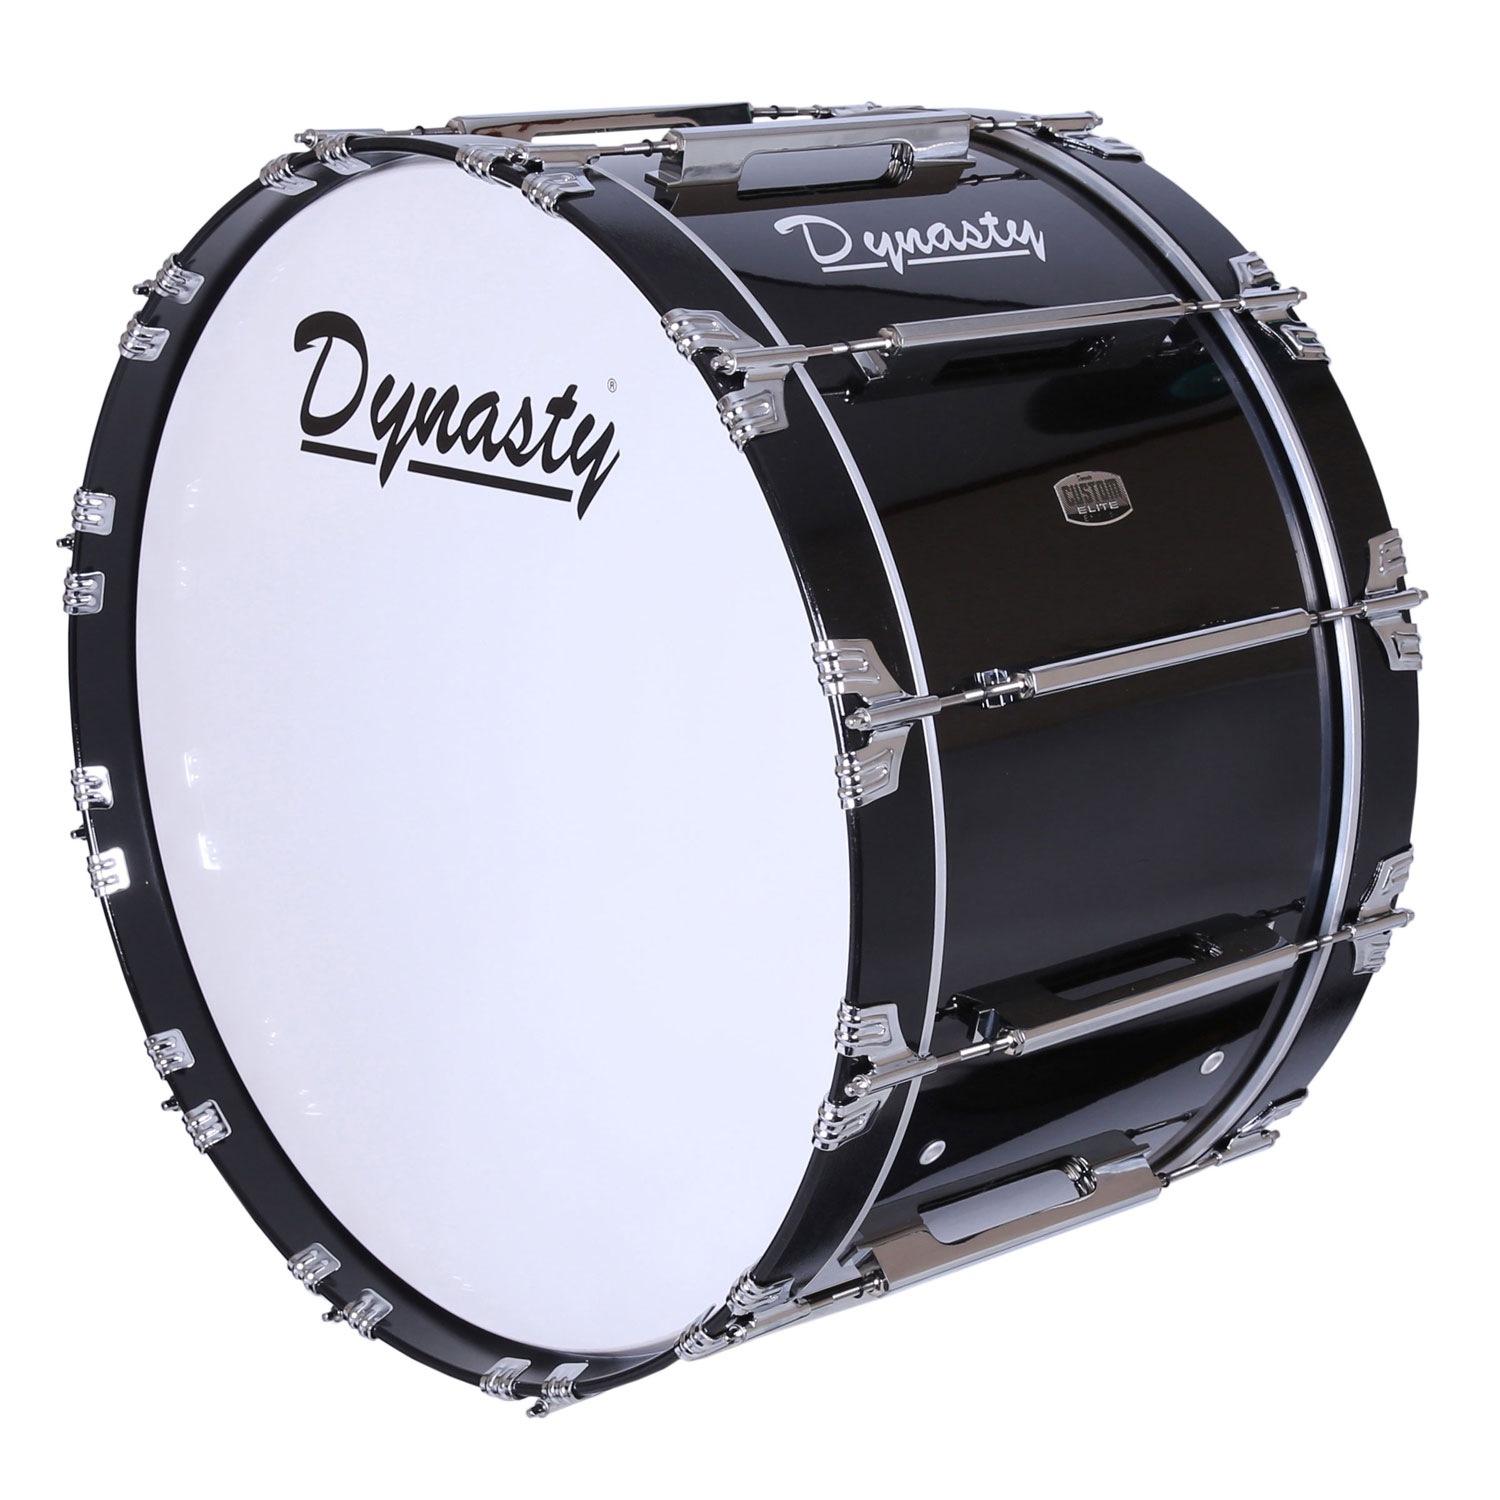 "Dynasty 18"" Custom Elite Marching Bass Drum in Black/Chrome"